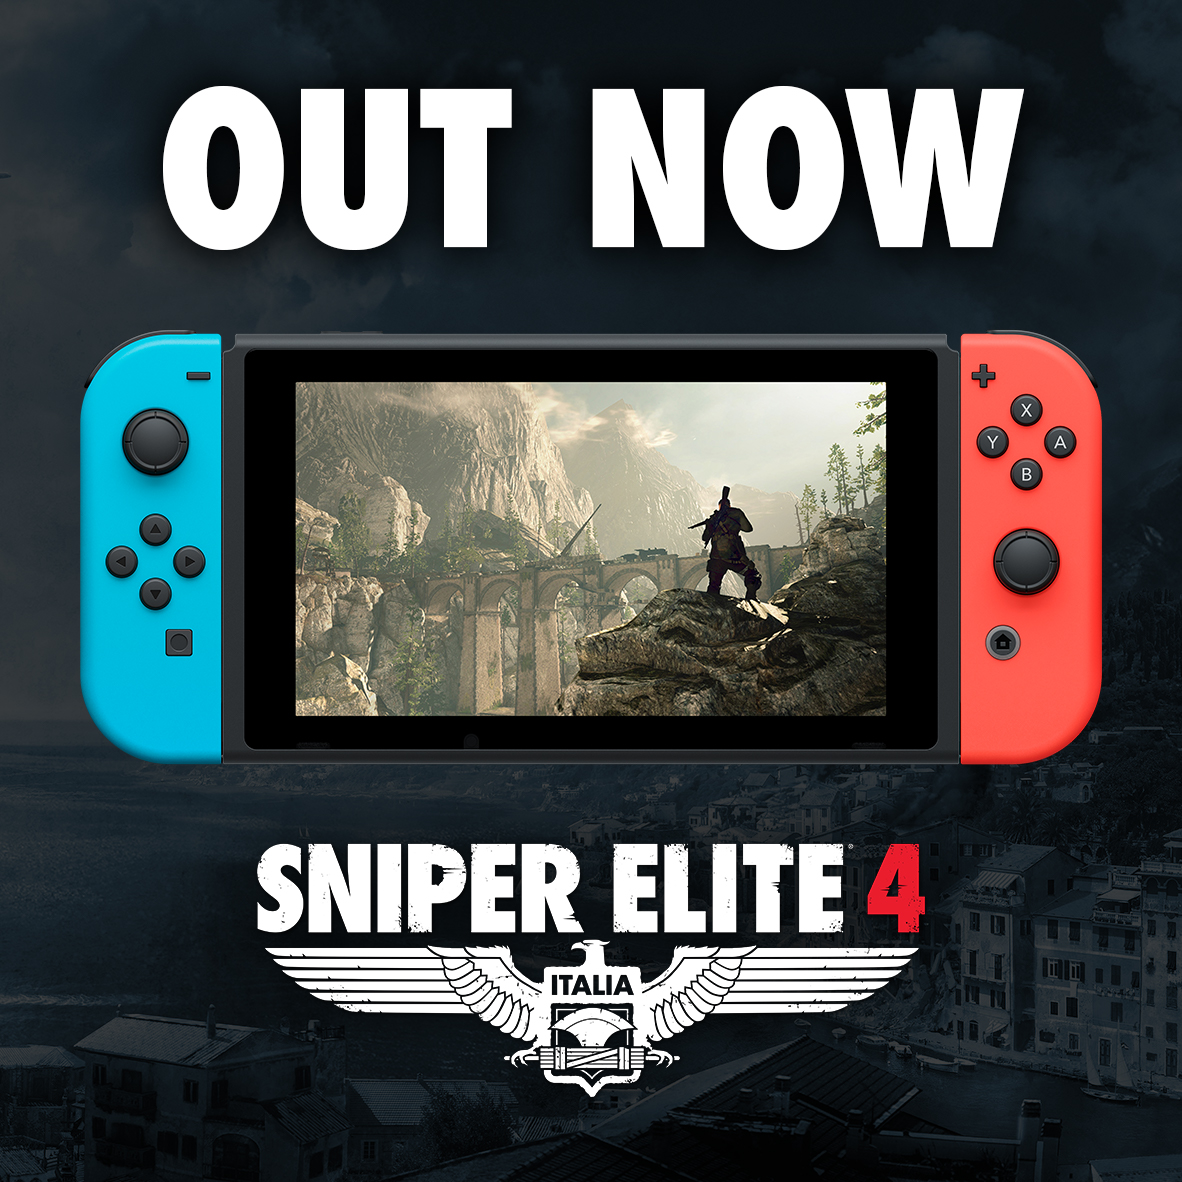 Sniper Elite 4 is OUT NOW on Switch